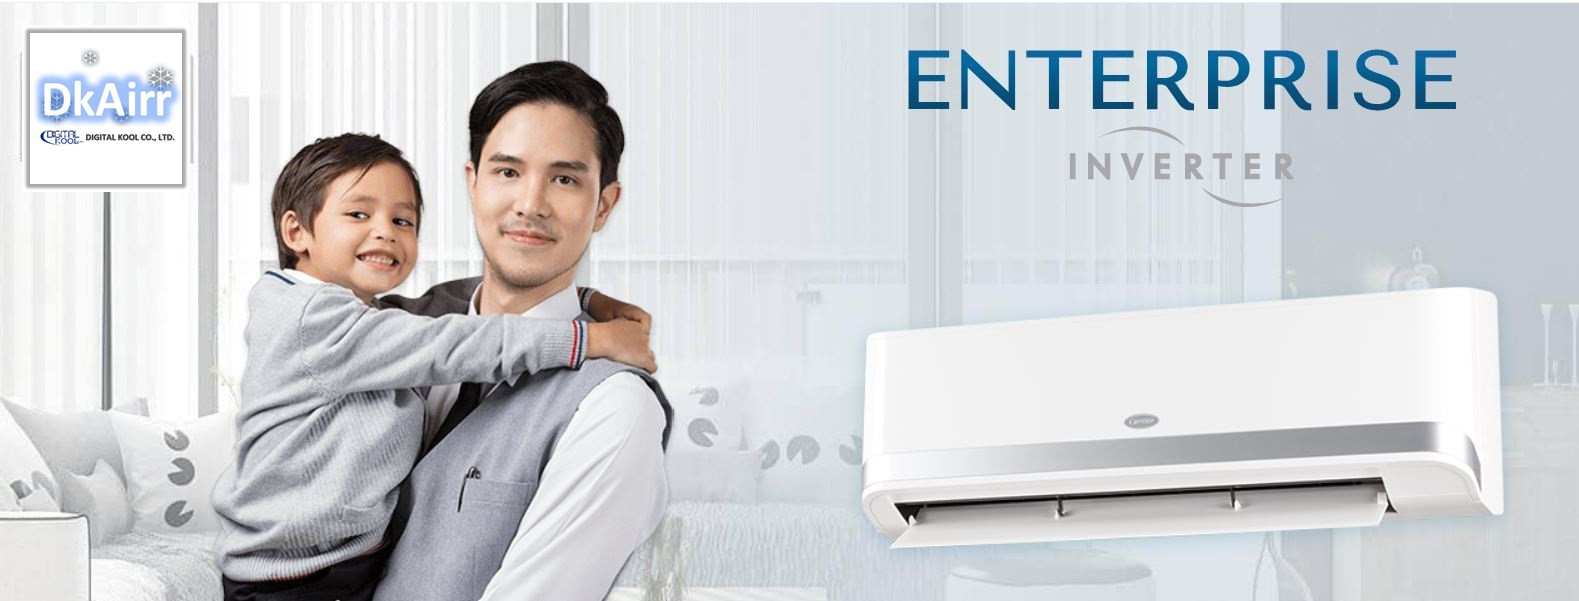 Carrier_42TOVGS010-024 แอร์ผนัง (Enterprise) Inverter เบอร์5 R32 ปี2019